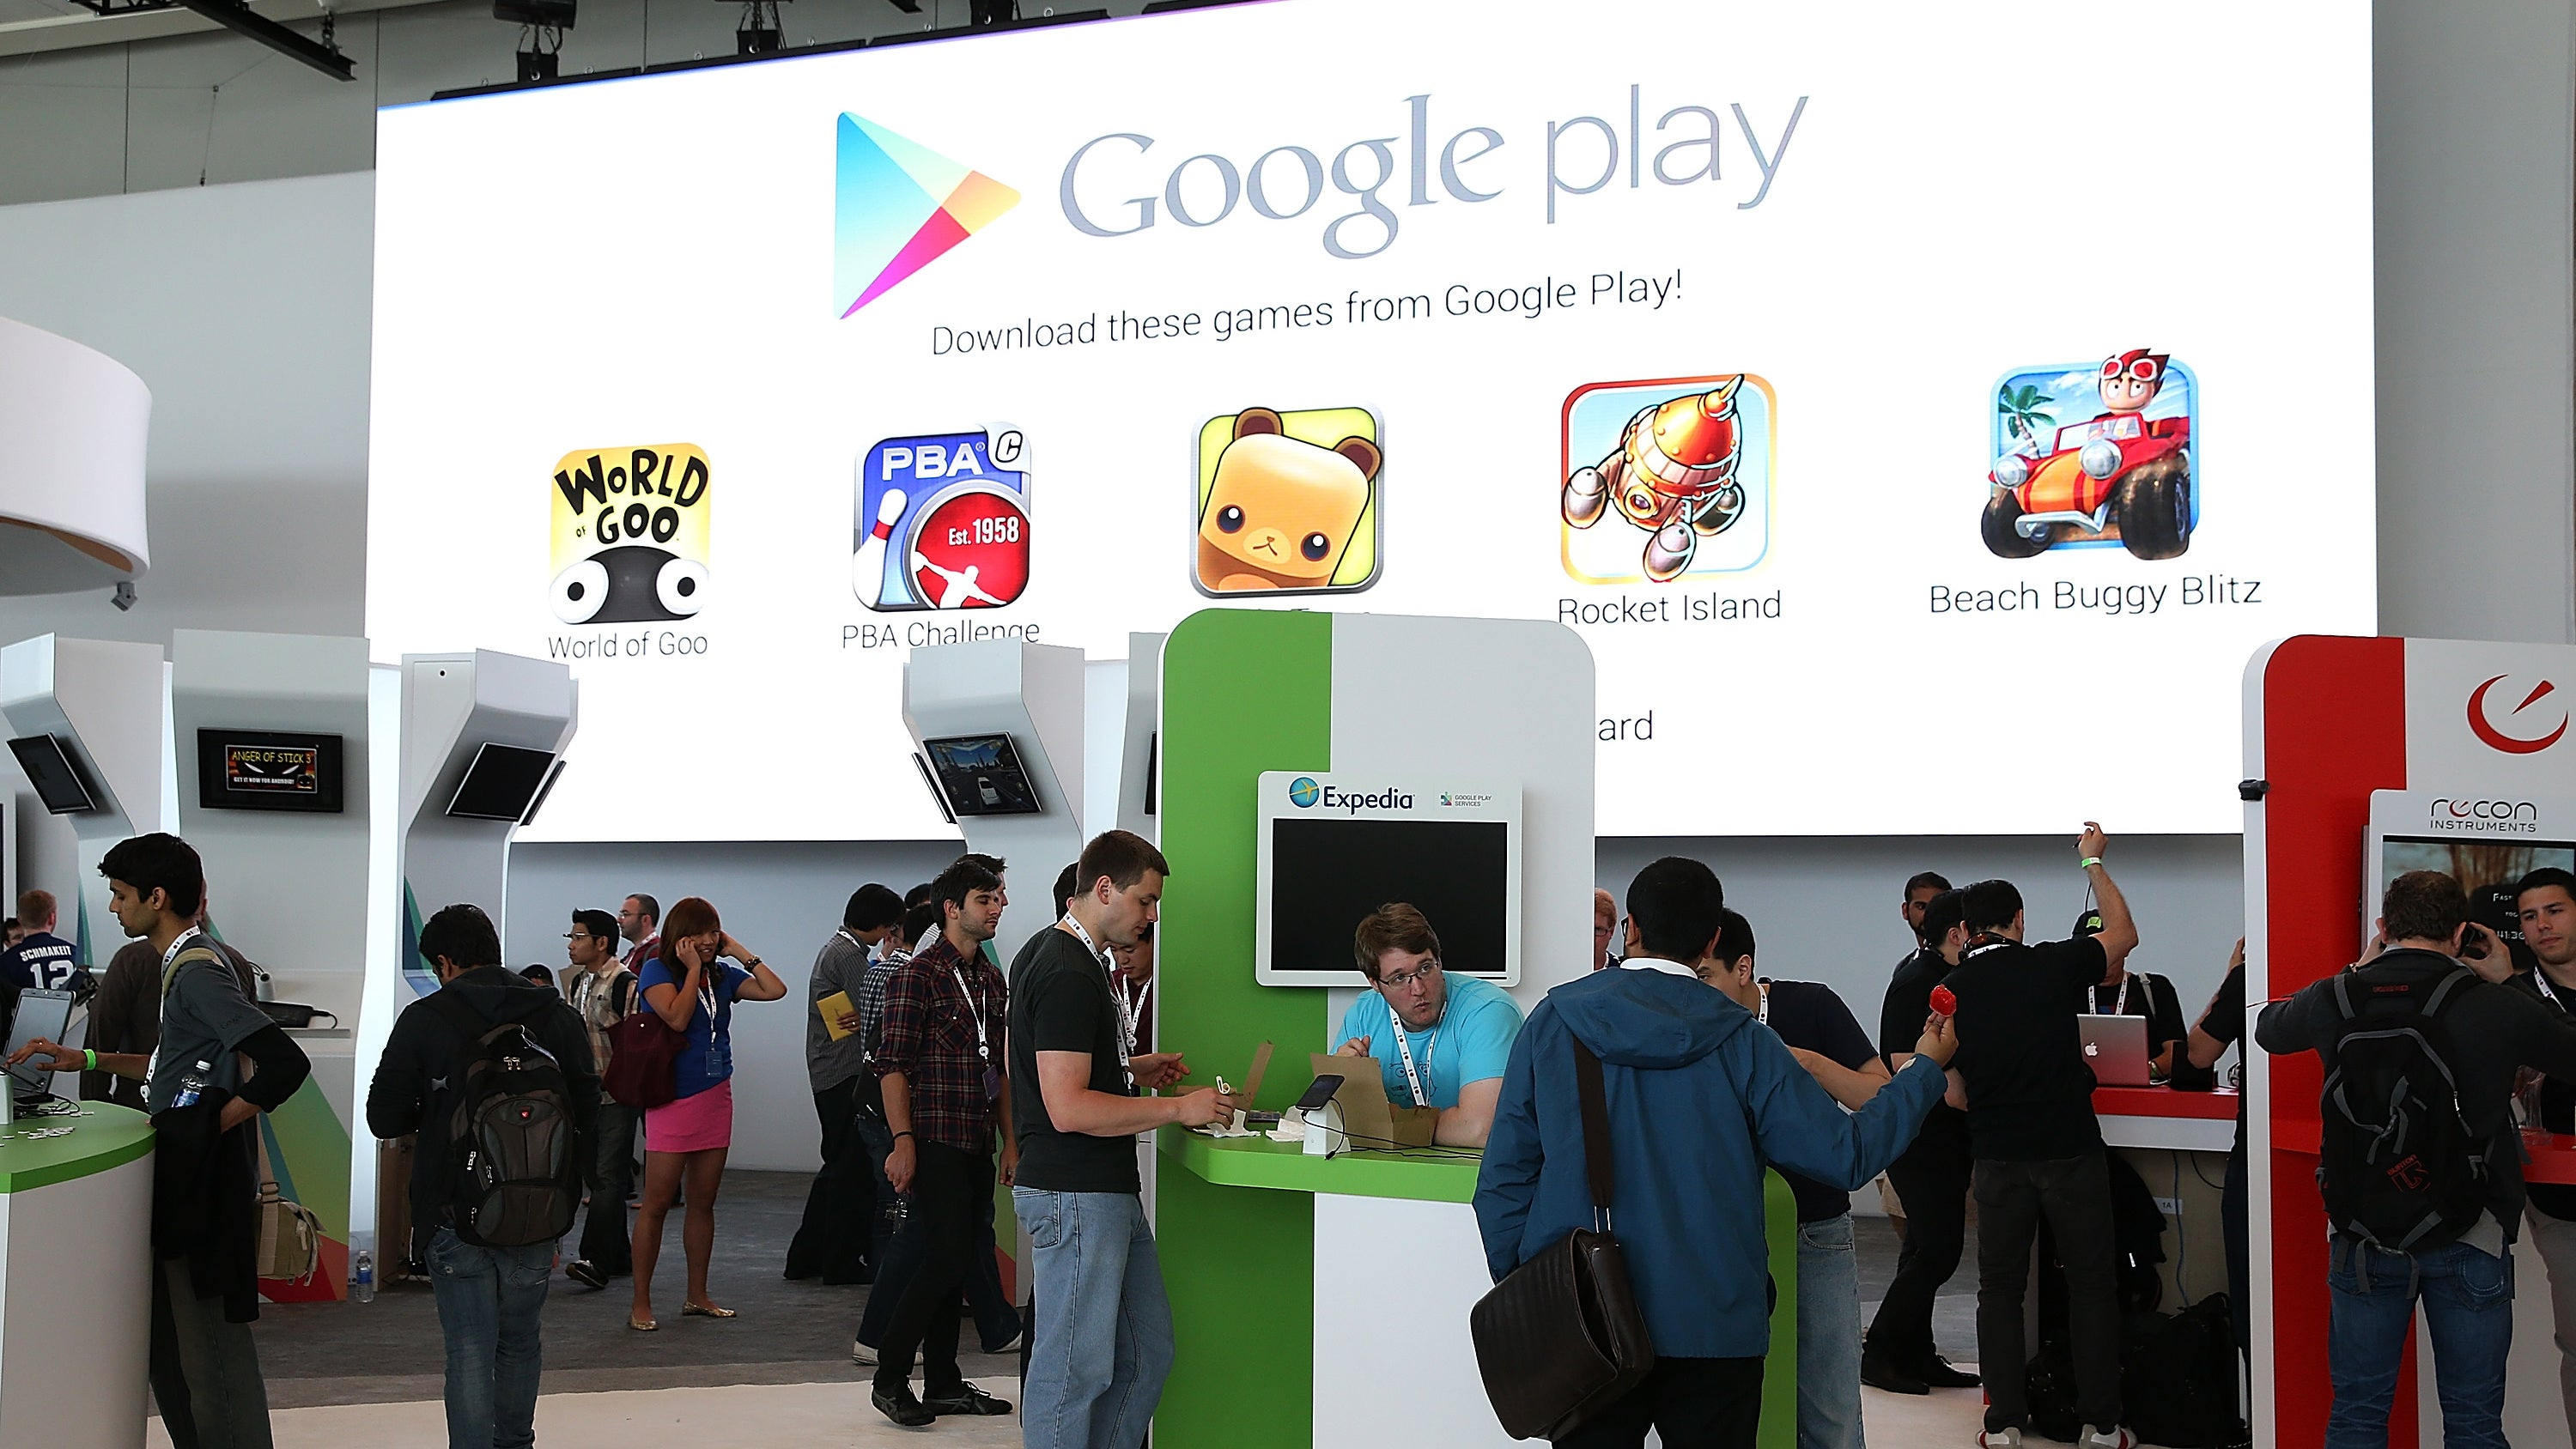 Google Expels Spyware From Play Store That Recorded Audio And Took Photos Without Permission